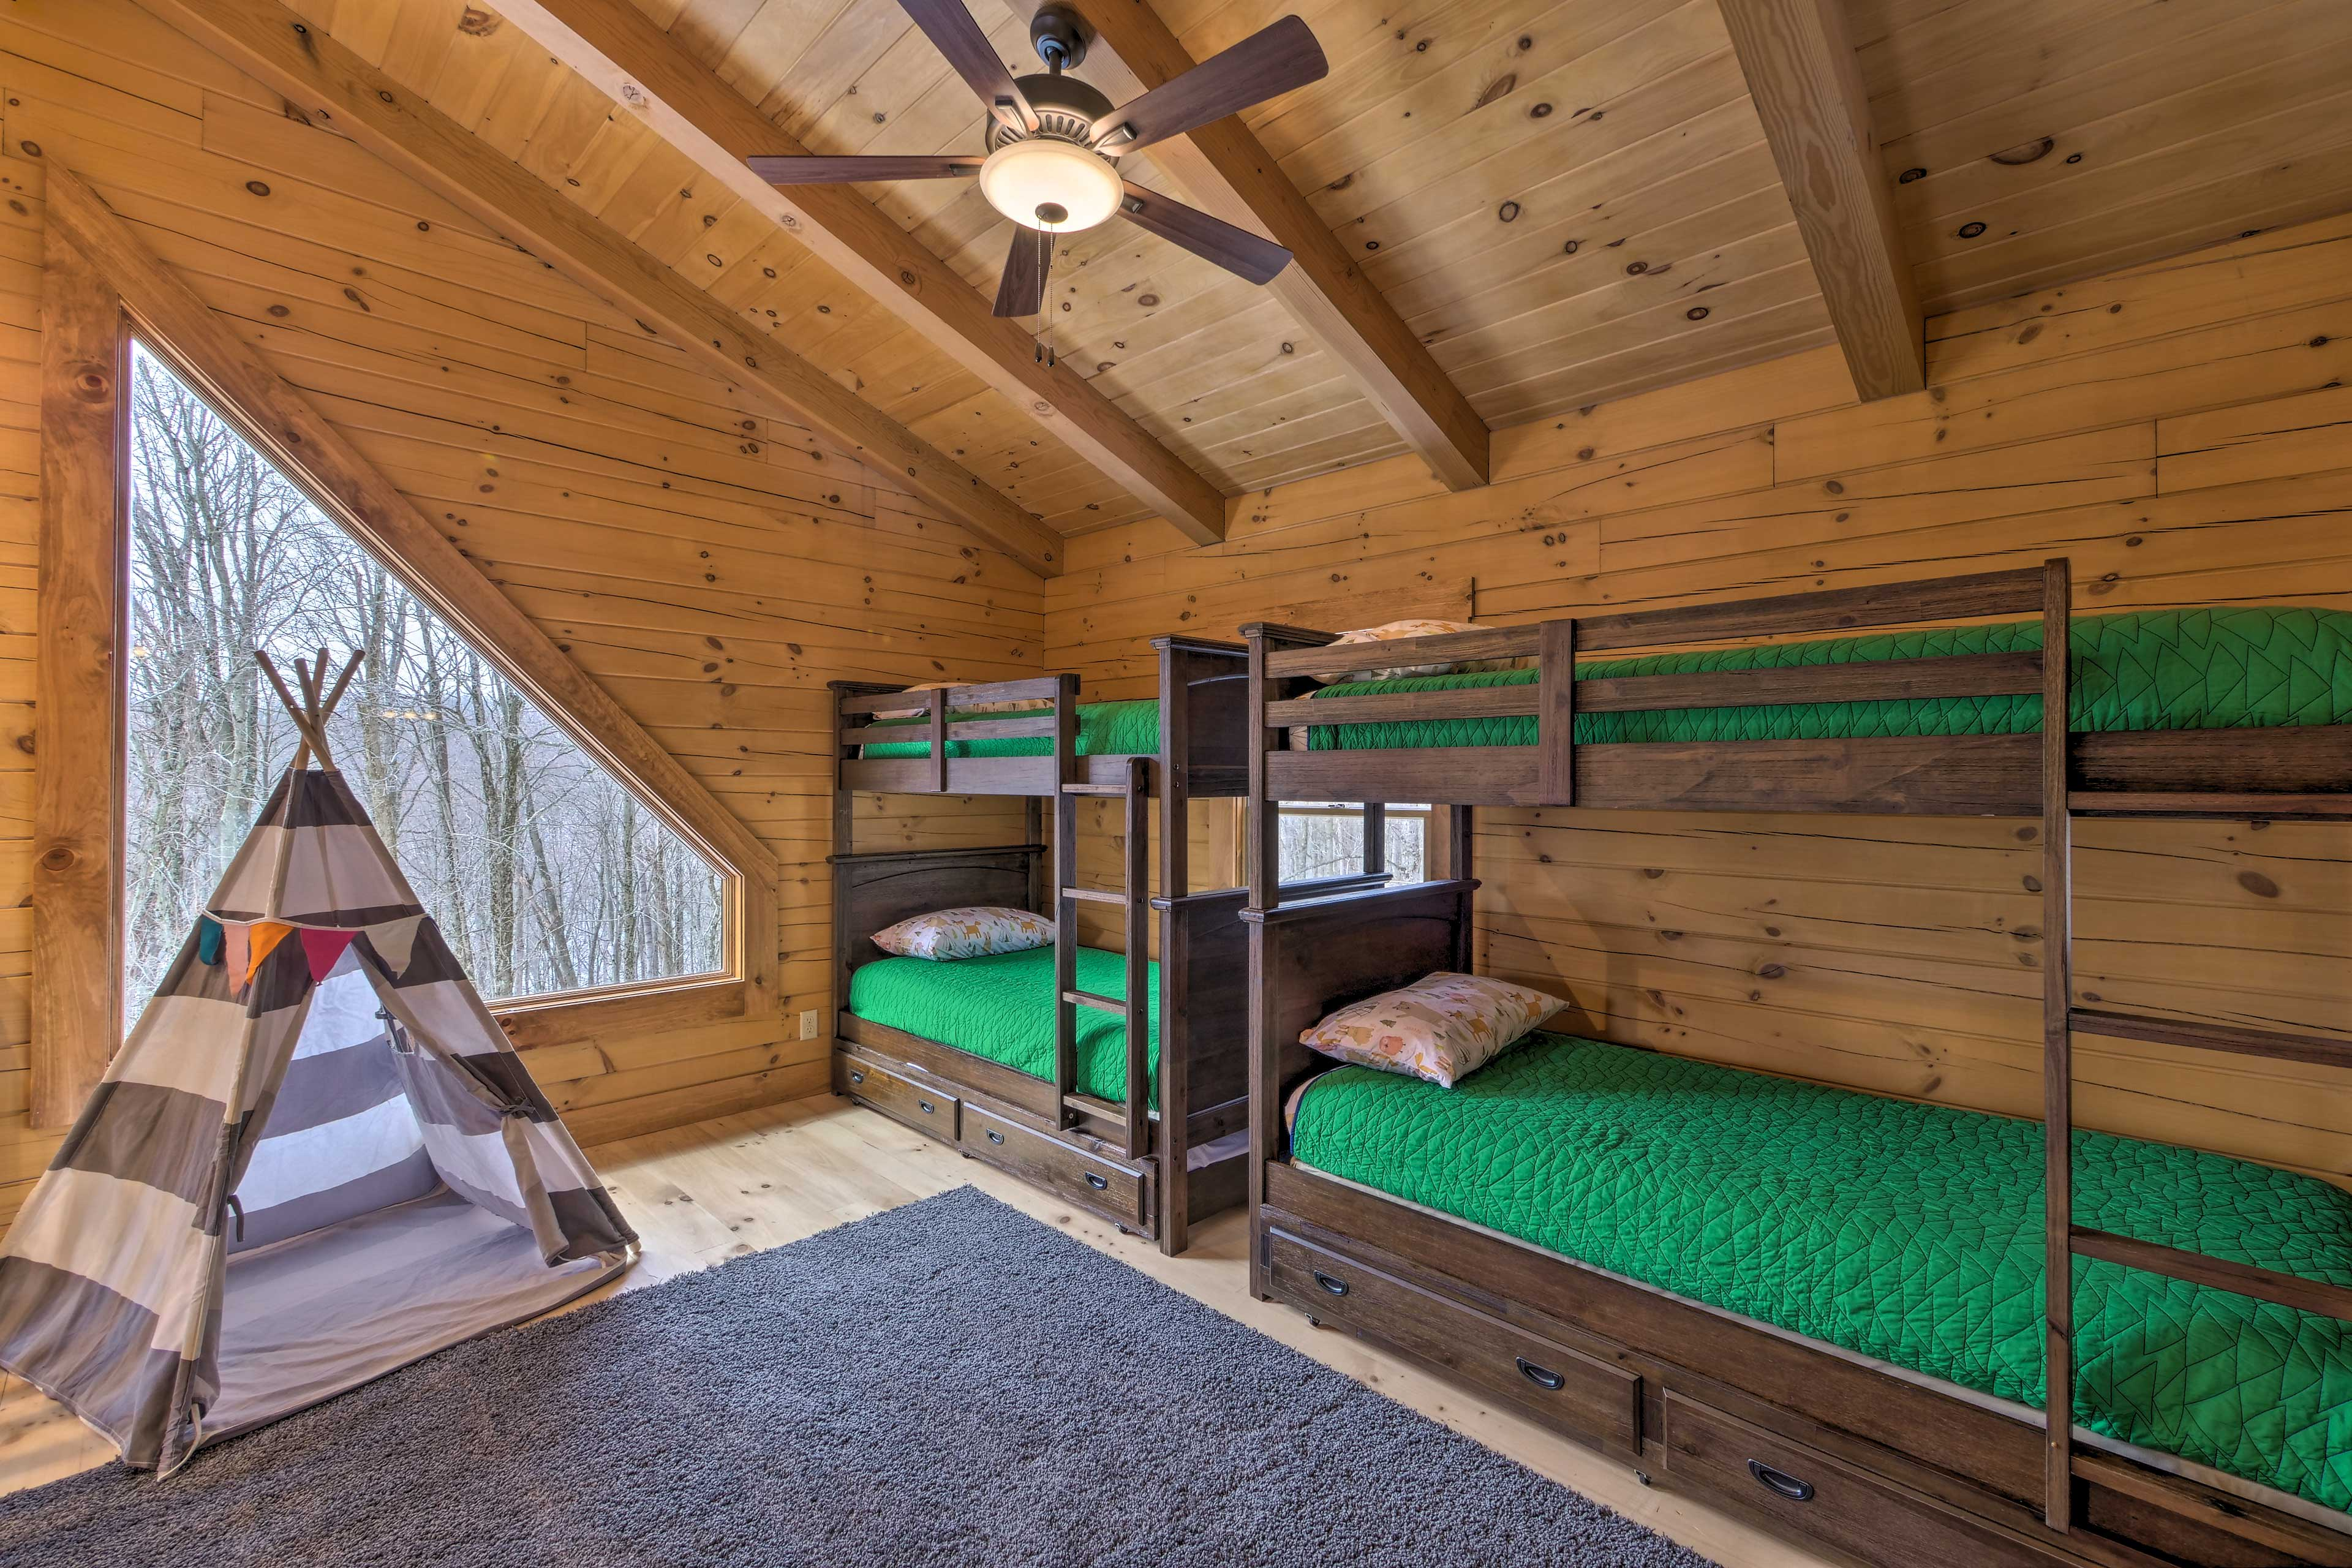 Kids will love sleeping in the 2 twin-over-twin bunk beds.